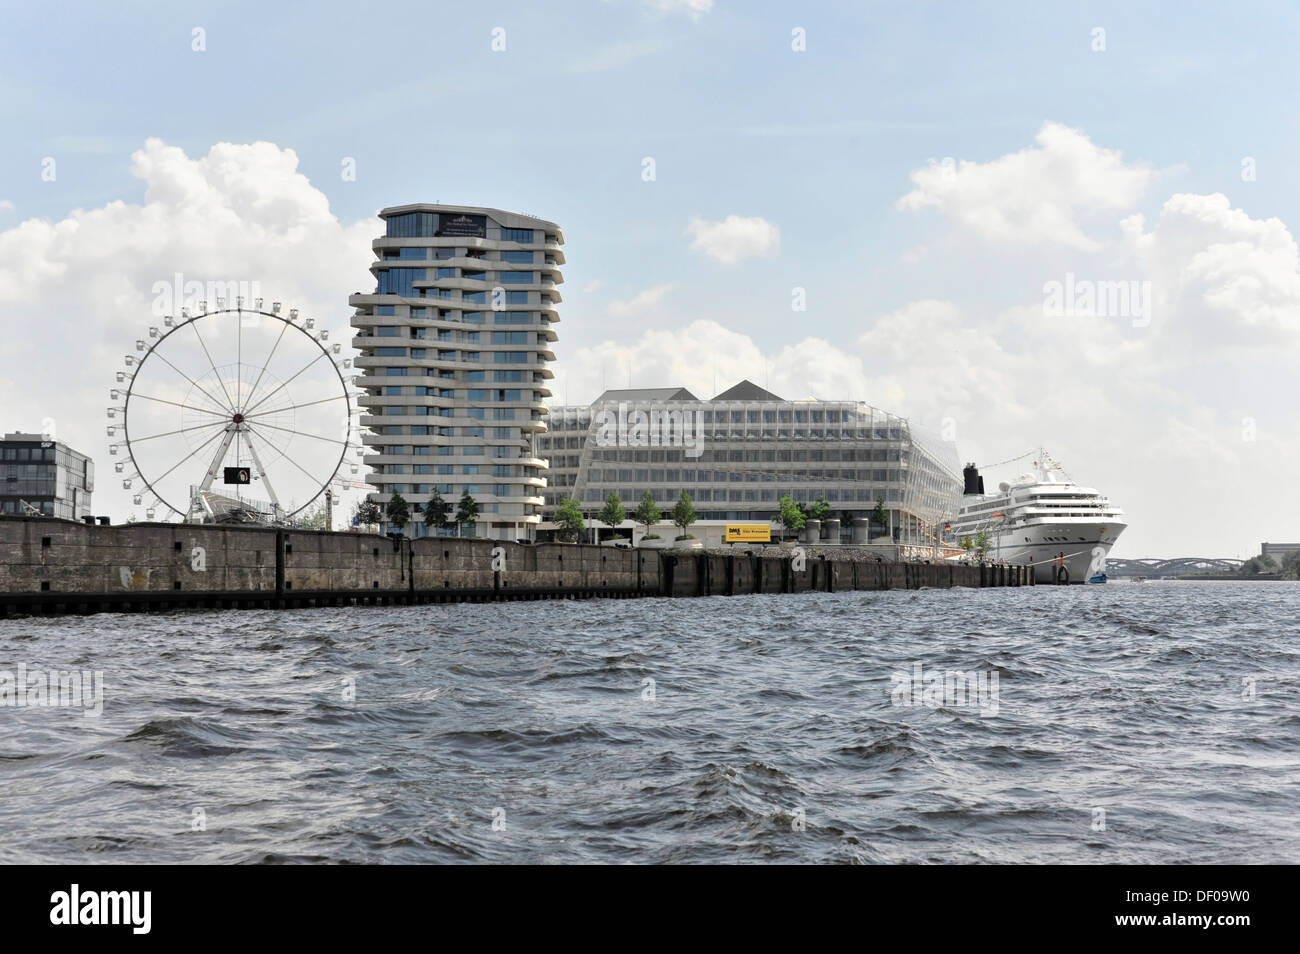 Ferris wheel, Marco Polo Tower and Unilever House, AMADEA cruise liner, right, built 1991, 193 metres, 600 passengers, HafenCity - Stock Image